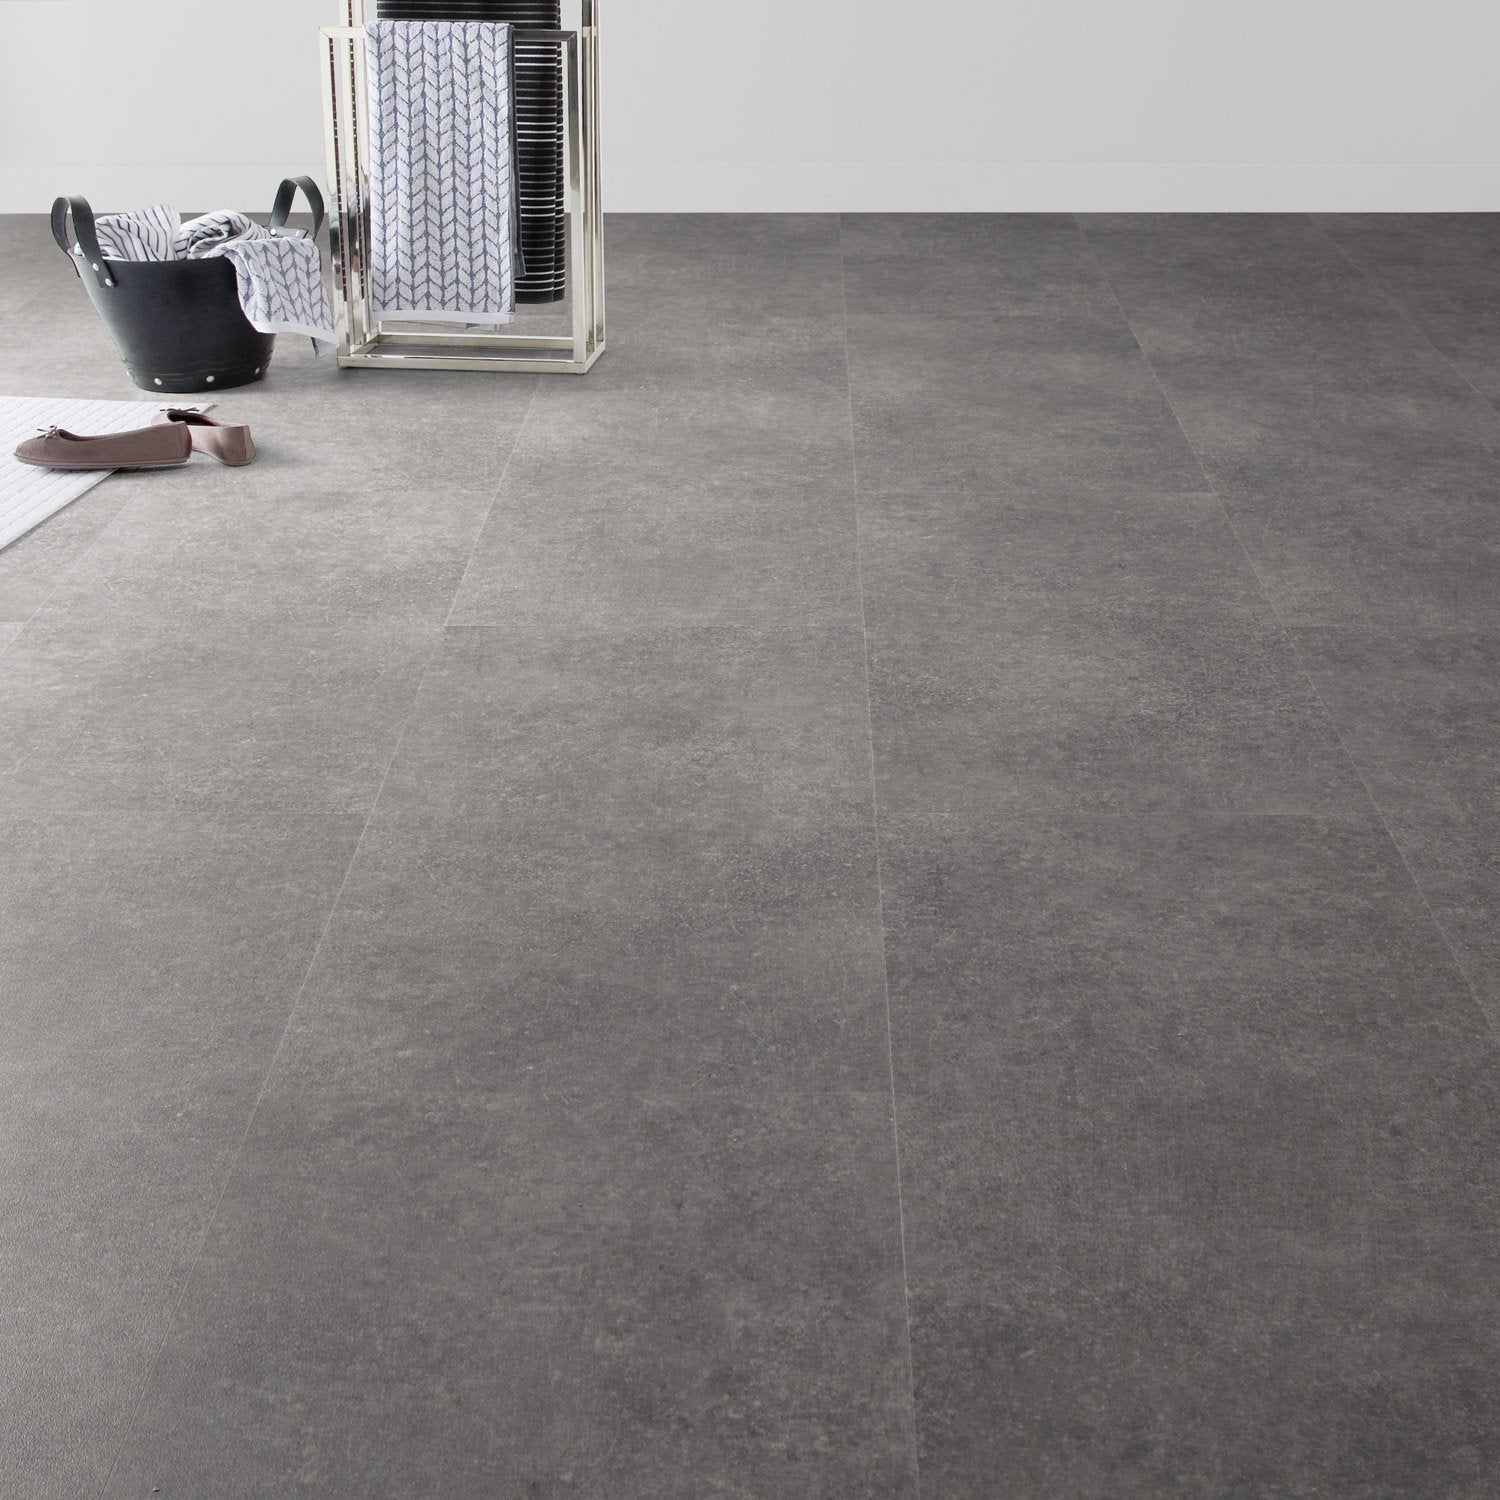 Dalle pvc clipsable gris m tal effet b ton clic moods artens leroy merlin - Dalle pvc imitation carreau de ciment ...